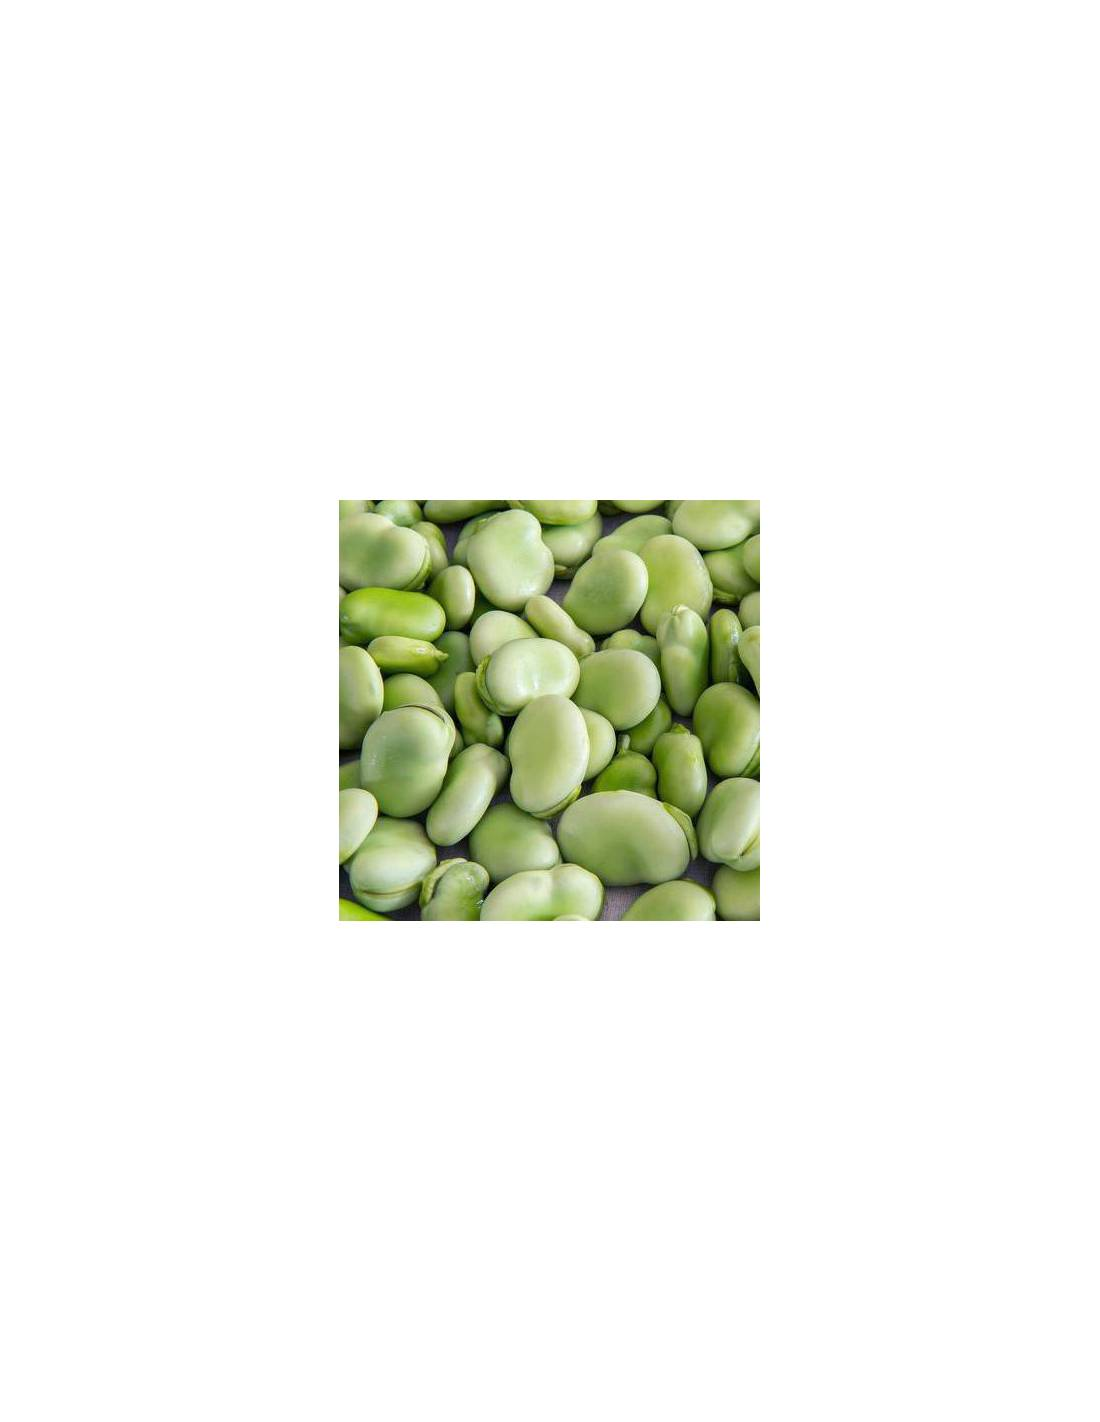 Fava 'Do Algarve'